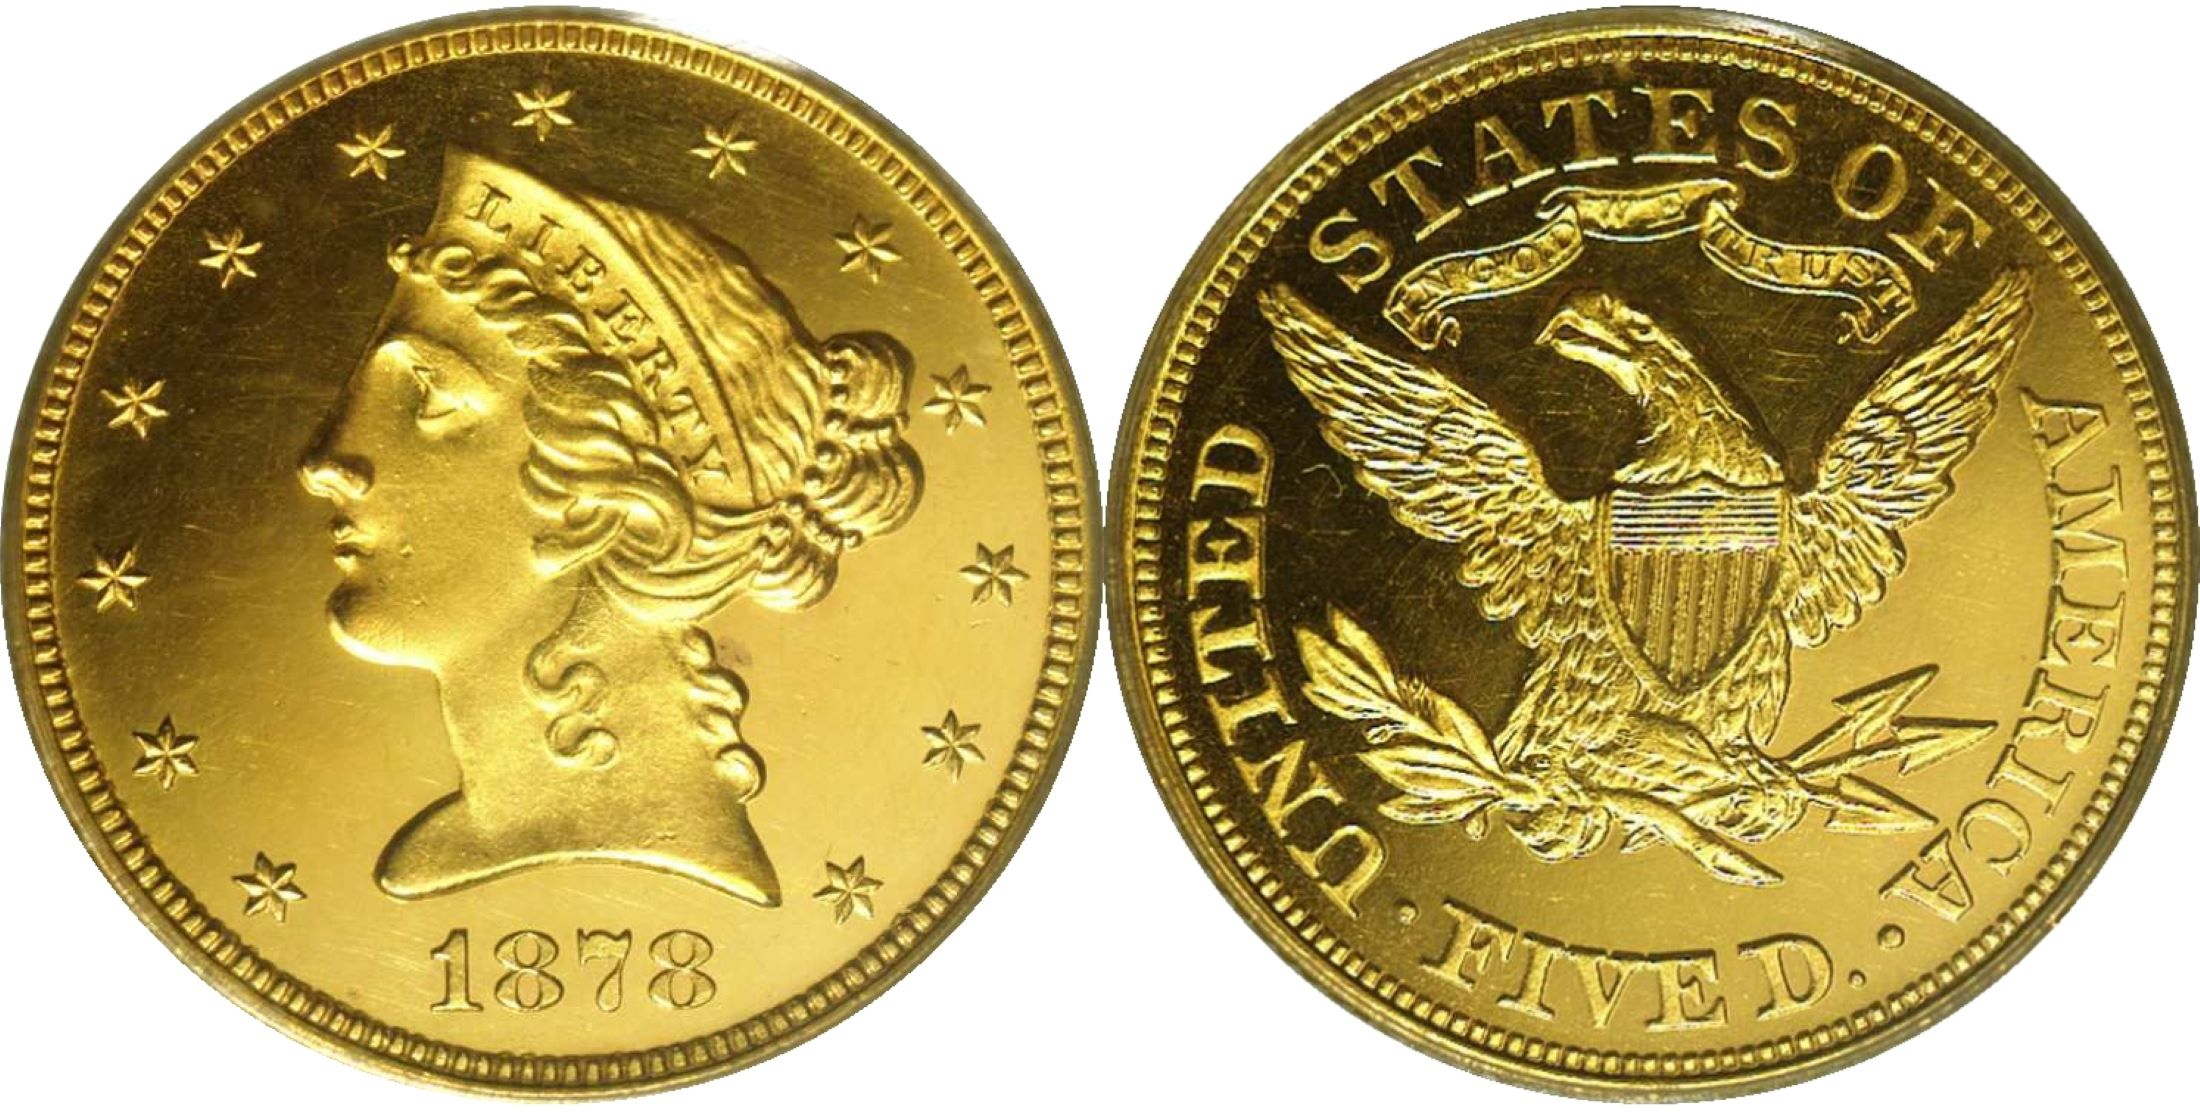 "PCGS PR63<BR>Image courtesy of <a href=""http://www.ha.com"" target=""_blank"">Heritage Numismatic Auctions</a>"